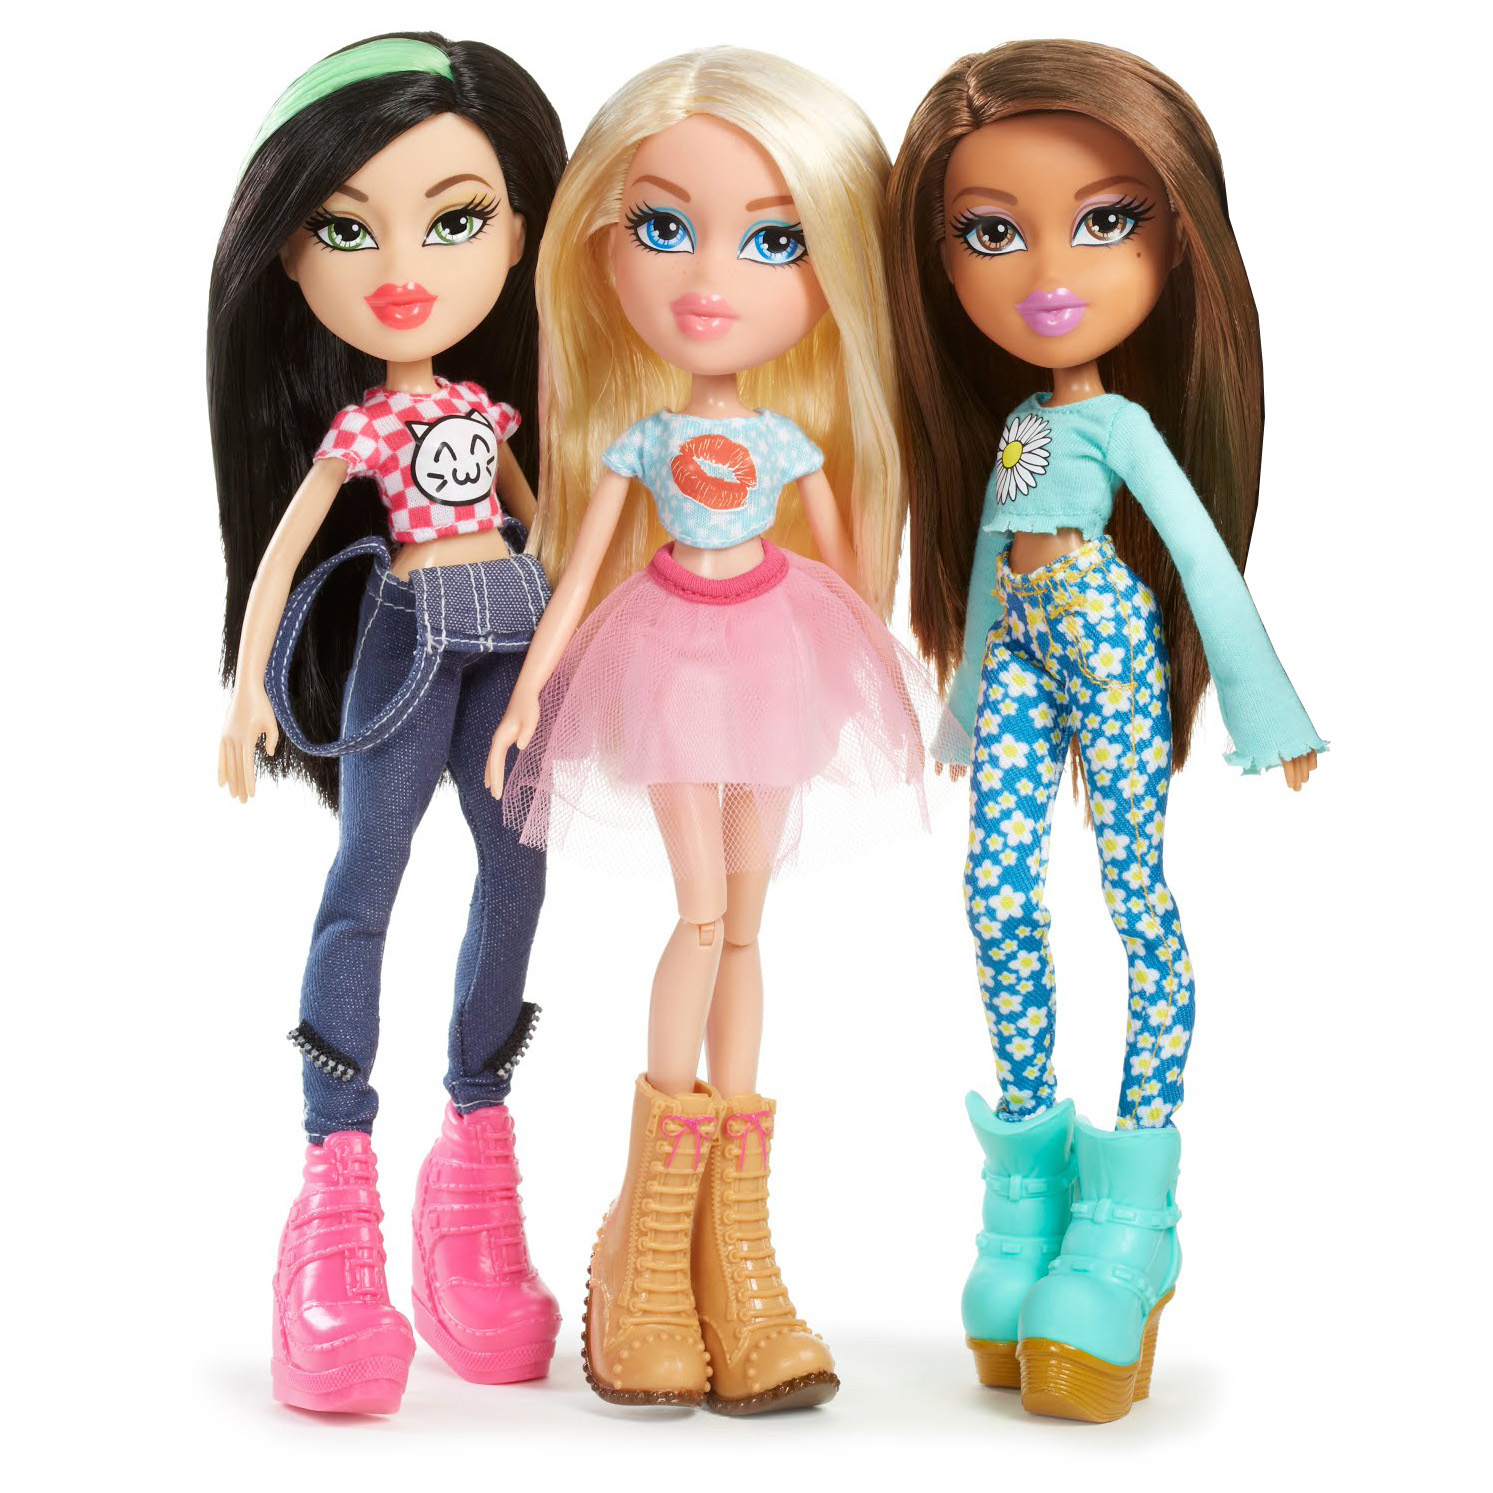 Bratz Remix Doll Cloe Jade Yasmin Fashion Girls Headphones Playlist Music Play Ebay